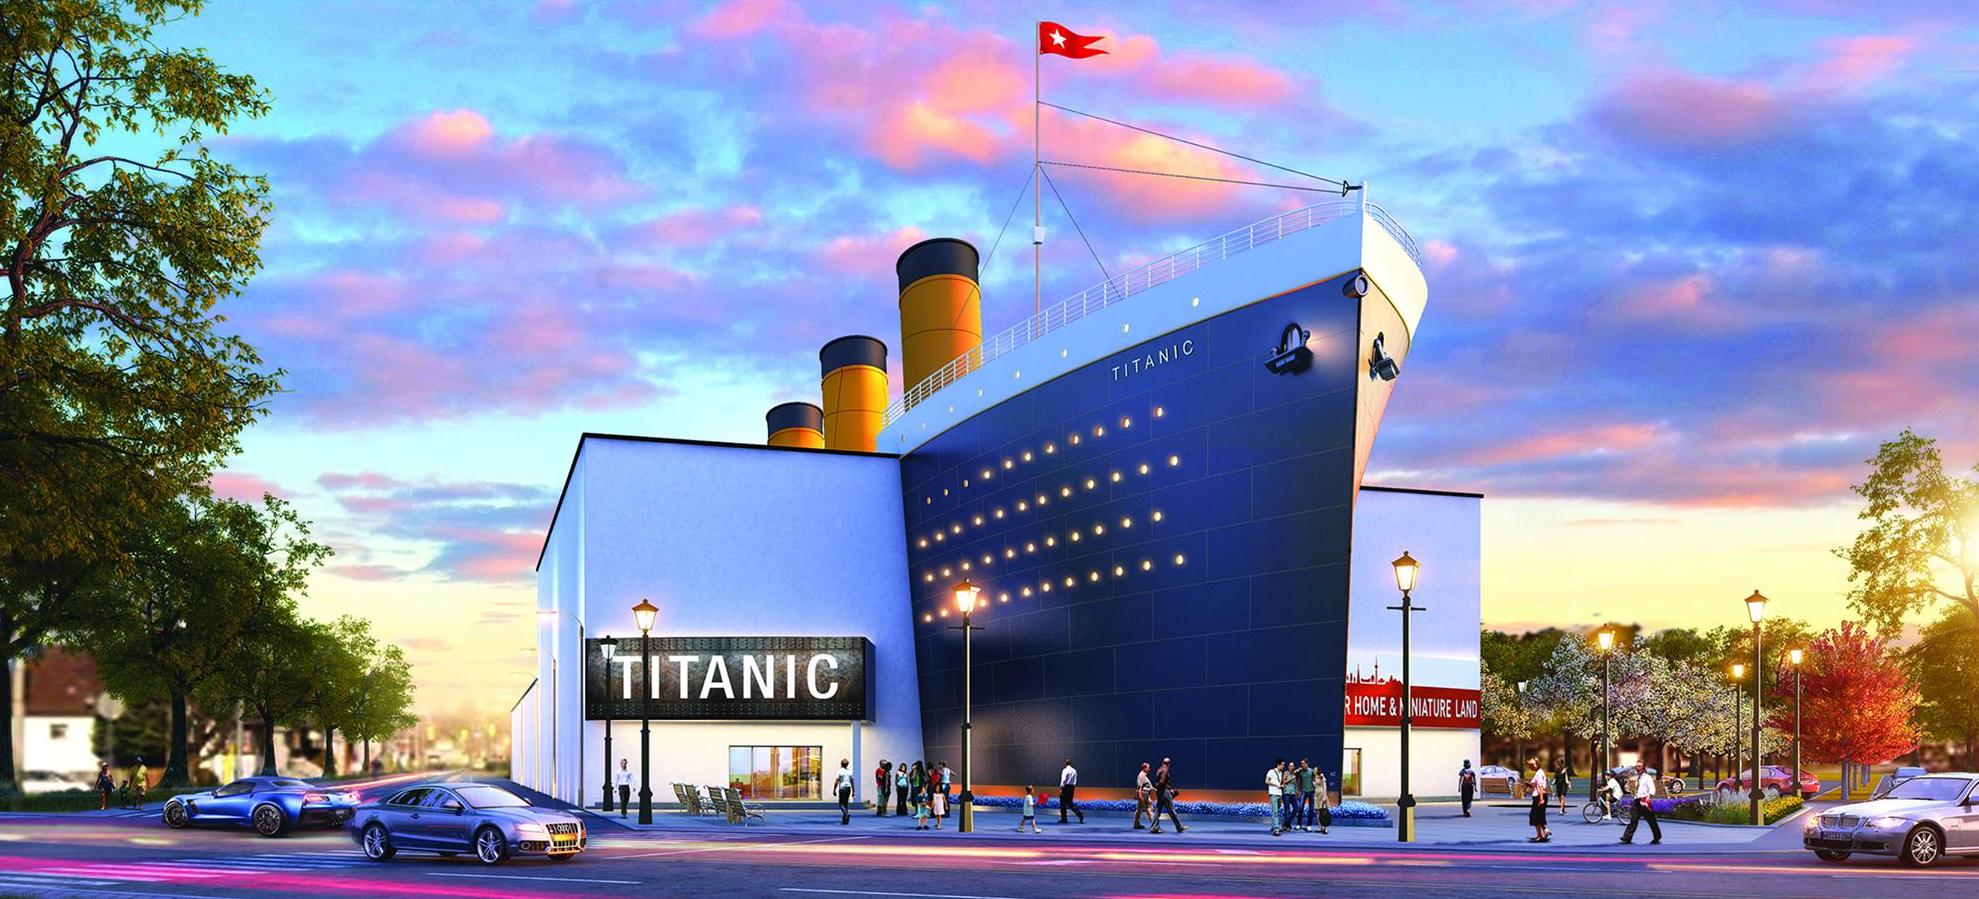 Exciting and interactive Titanic museum set to launch next year in Niagara Falls